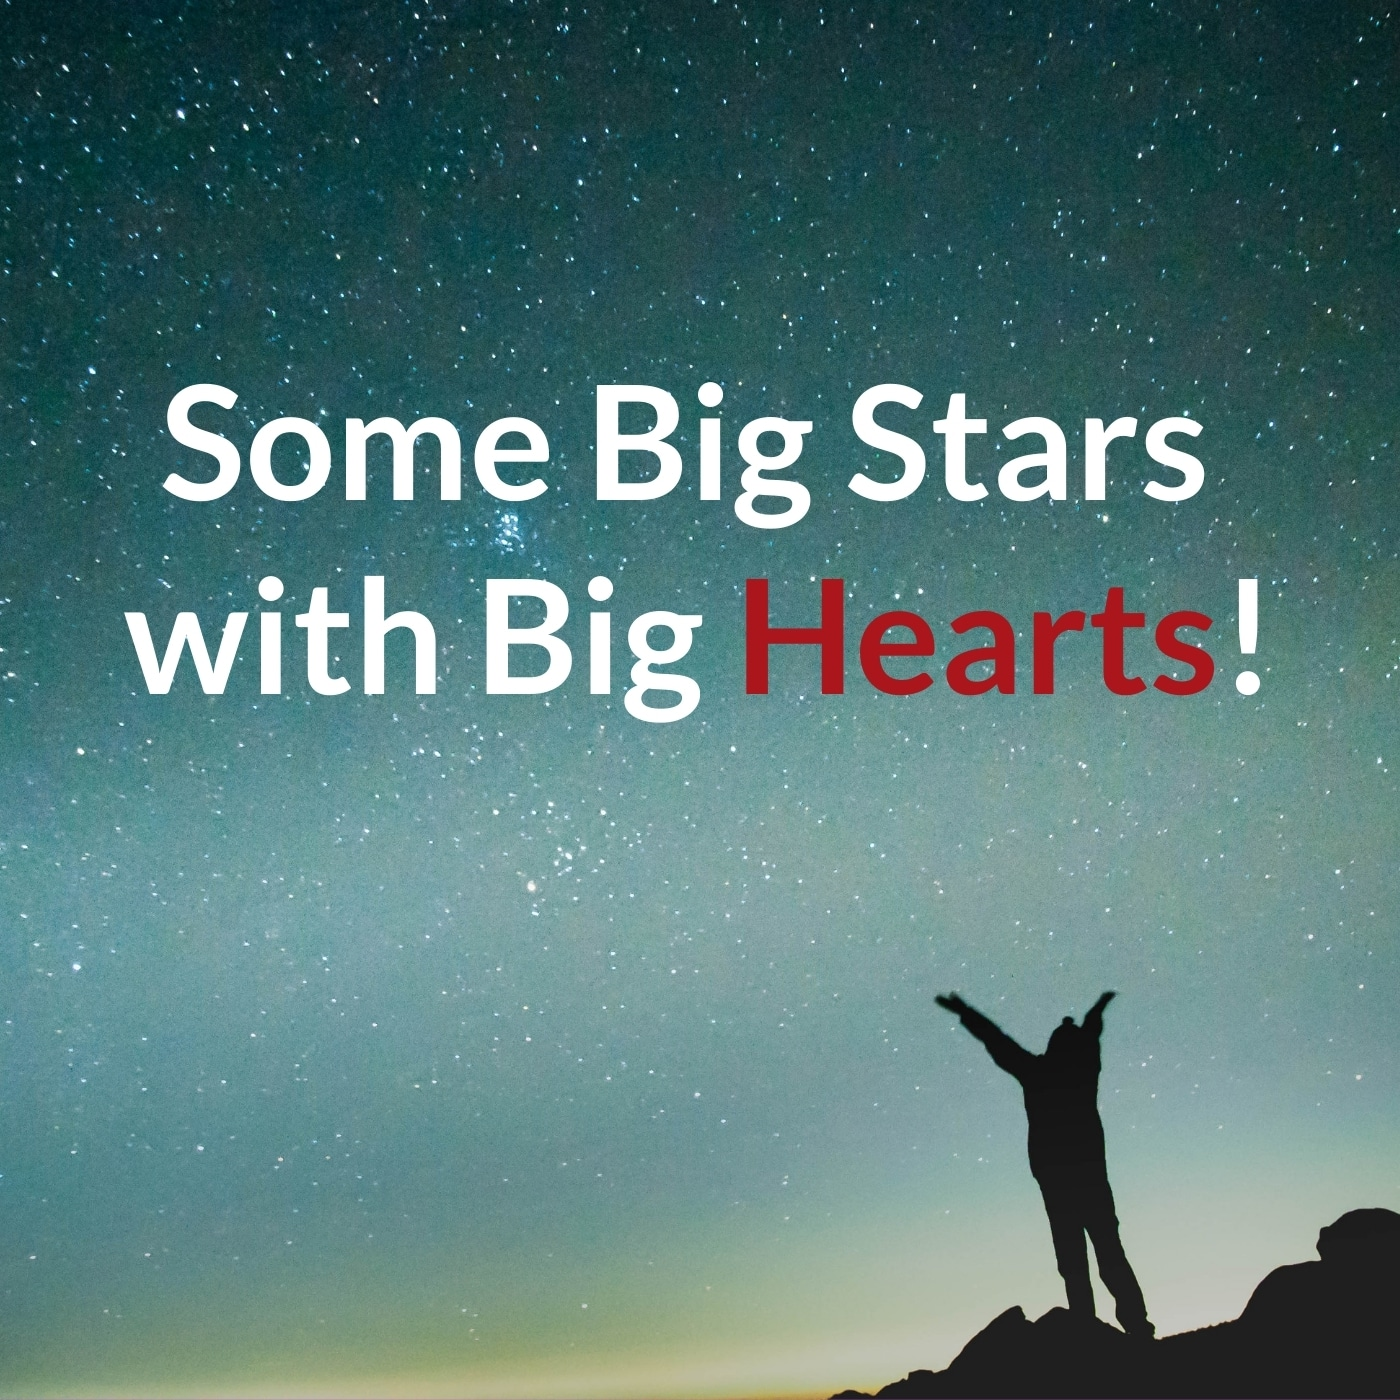 Some Big Stars with Big Hearts!